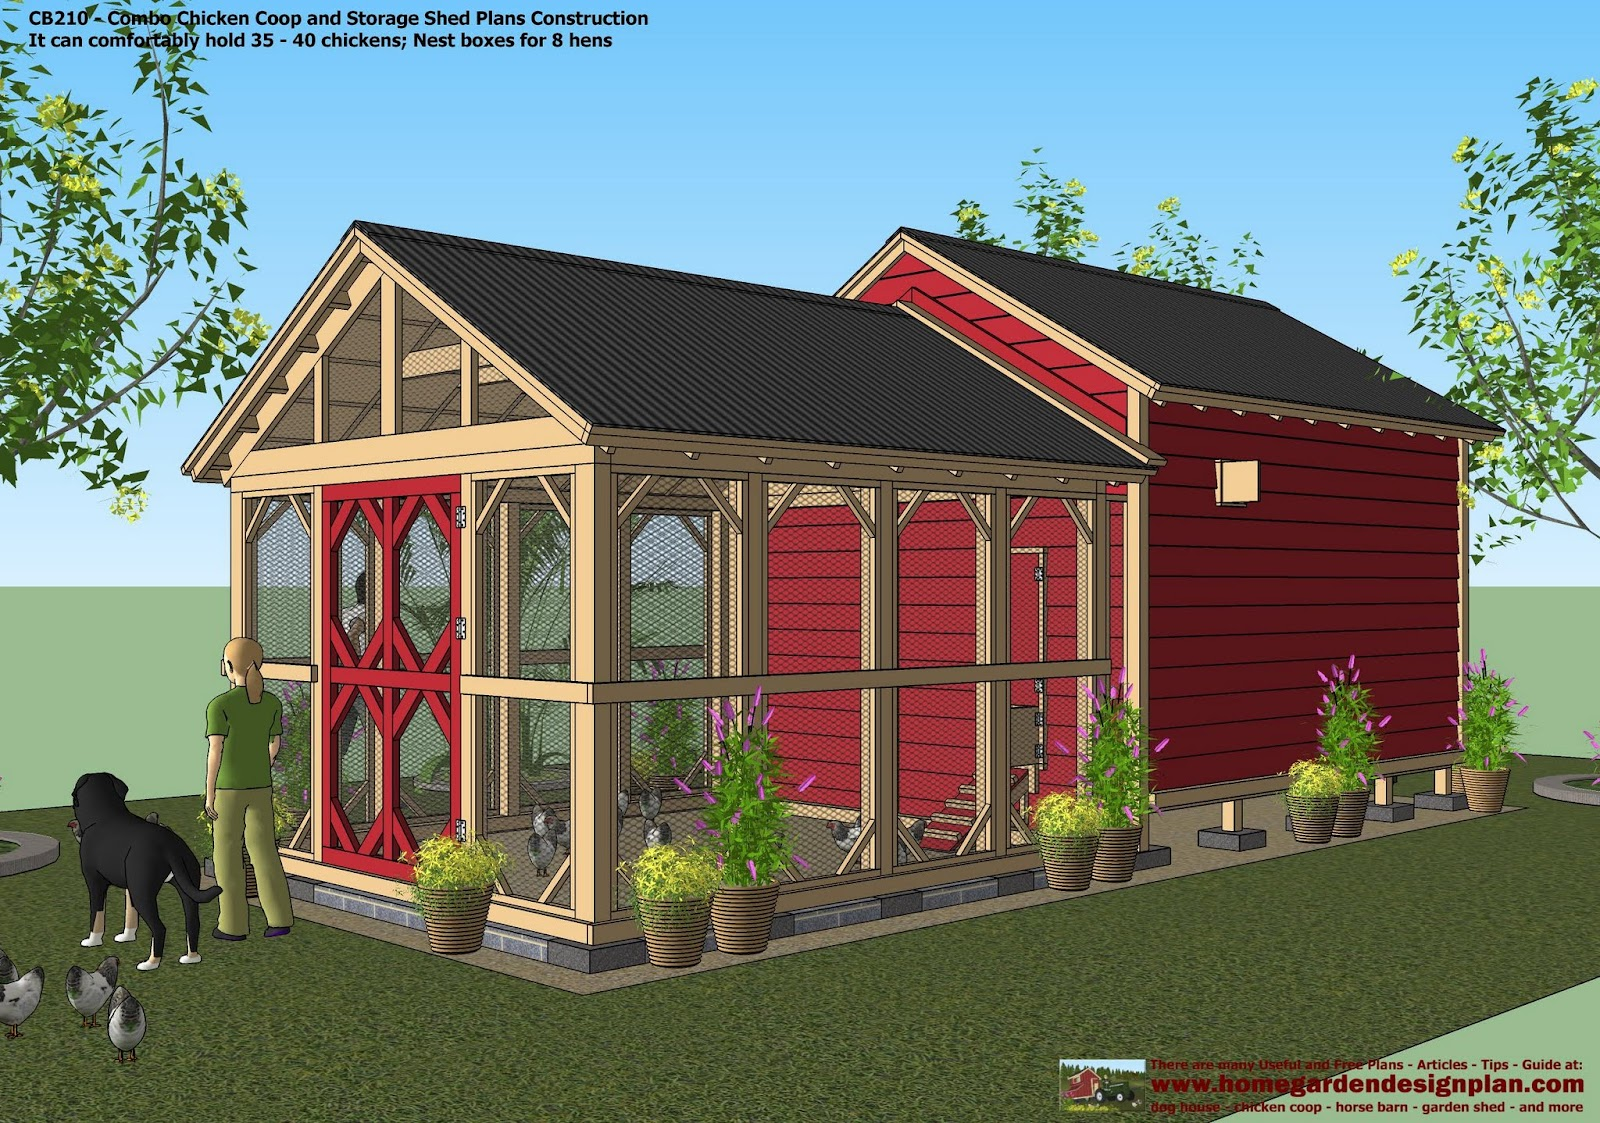 garden shed chicken co op combo - Chicken Co Op Plans And Greenhouse